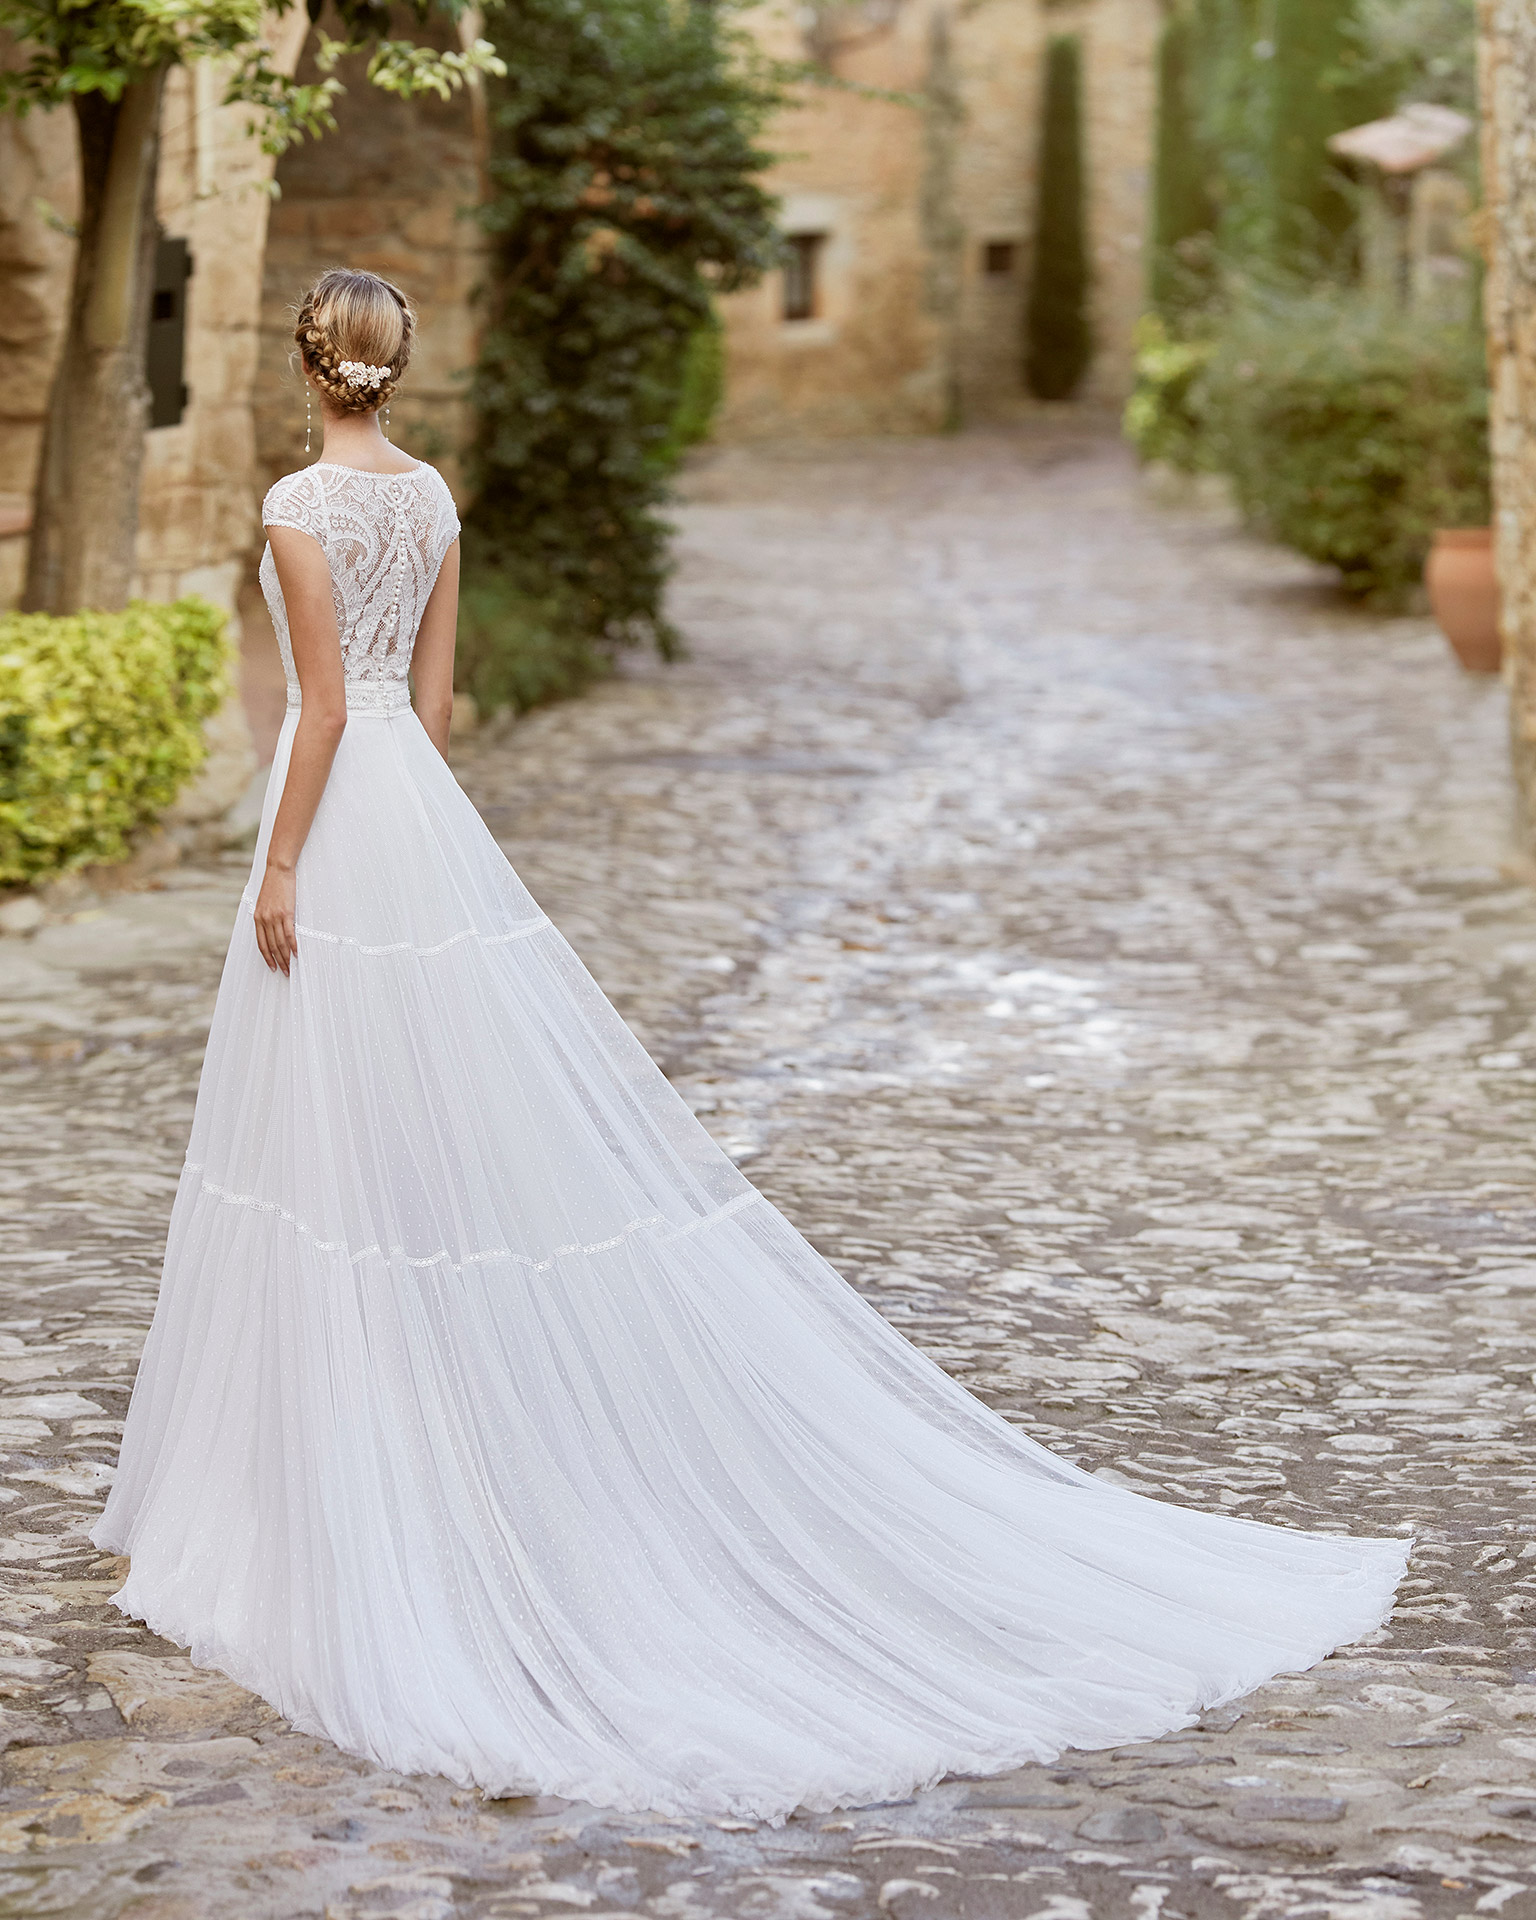 Delicate ballgown-style wedding dress with a beadwork and lace bodice; with V-neckline, closed back with lace and raglan sleeves. Alma Novia model in dot tulle. 2022 ALMANOVIA Collection.